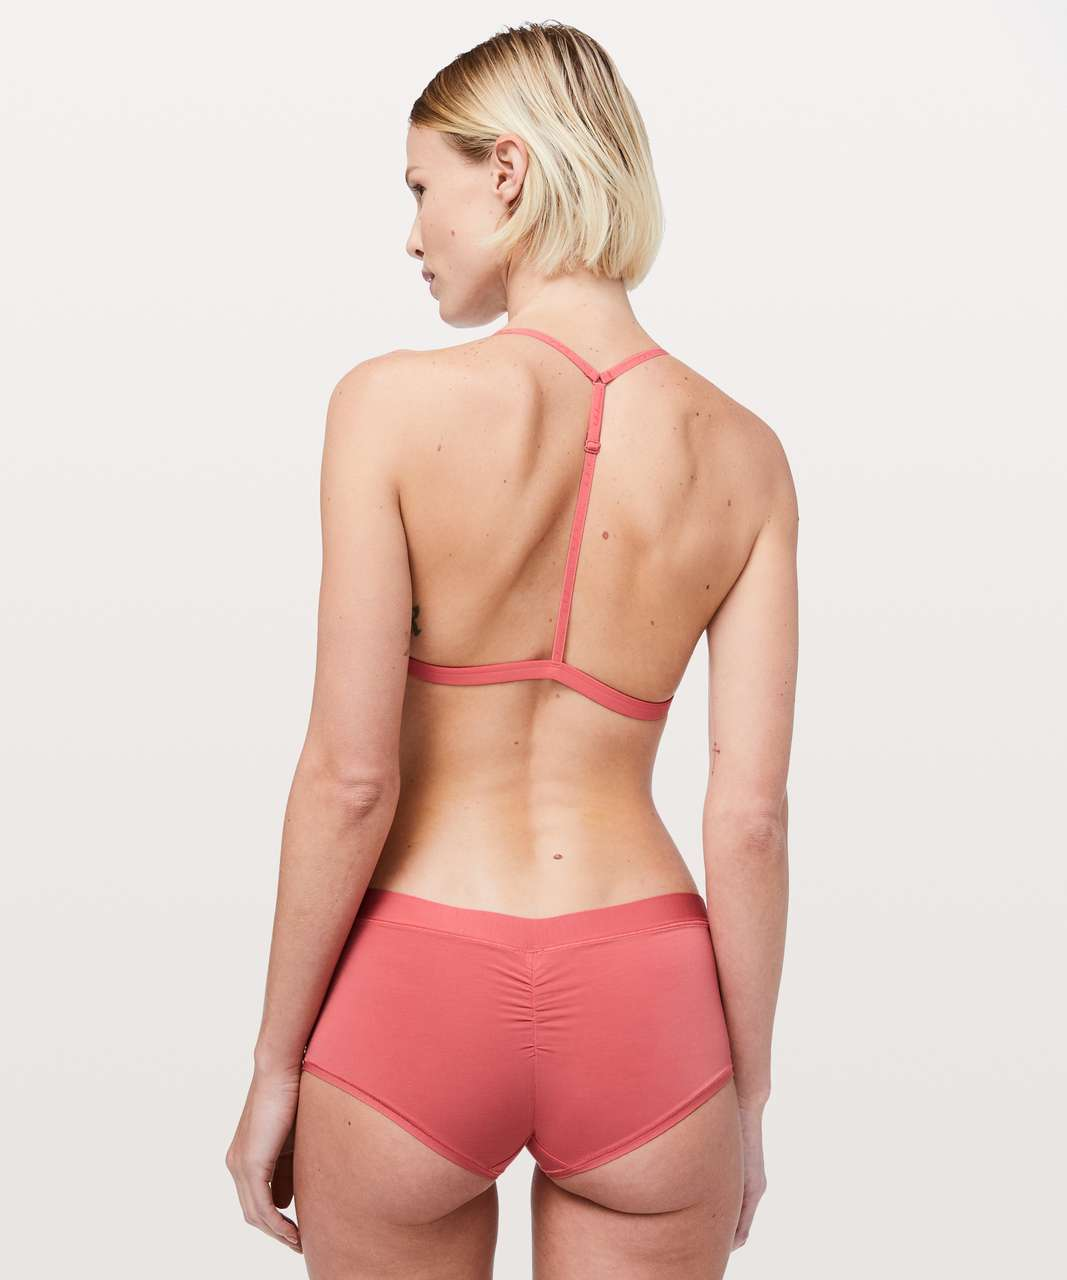 Lululemon Simply There Triangle Bralette - Blush Coral